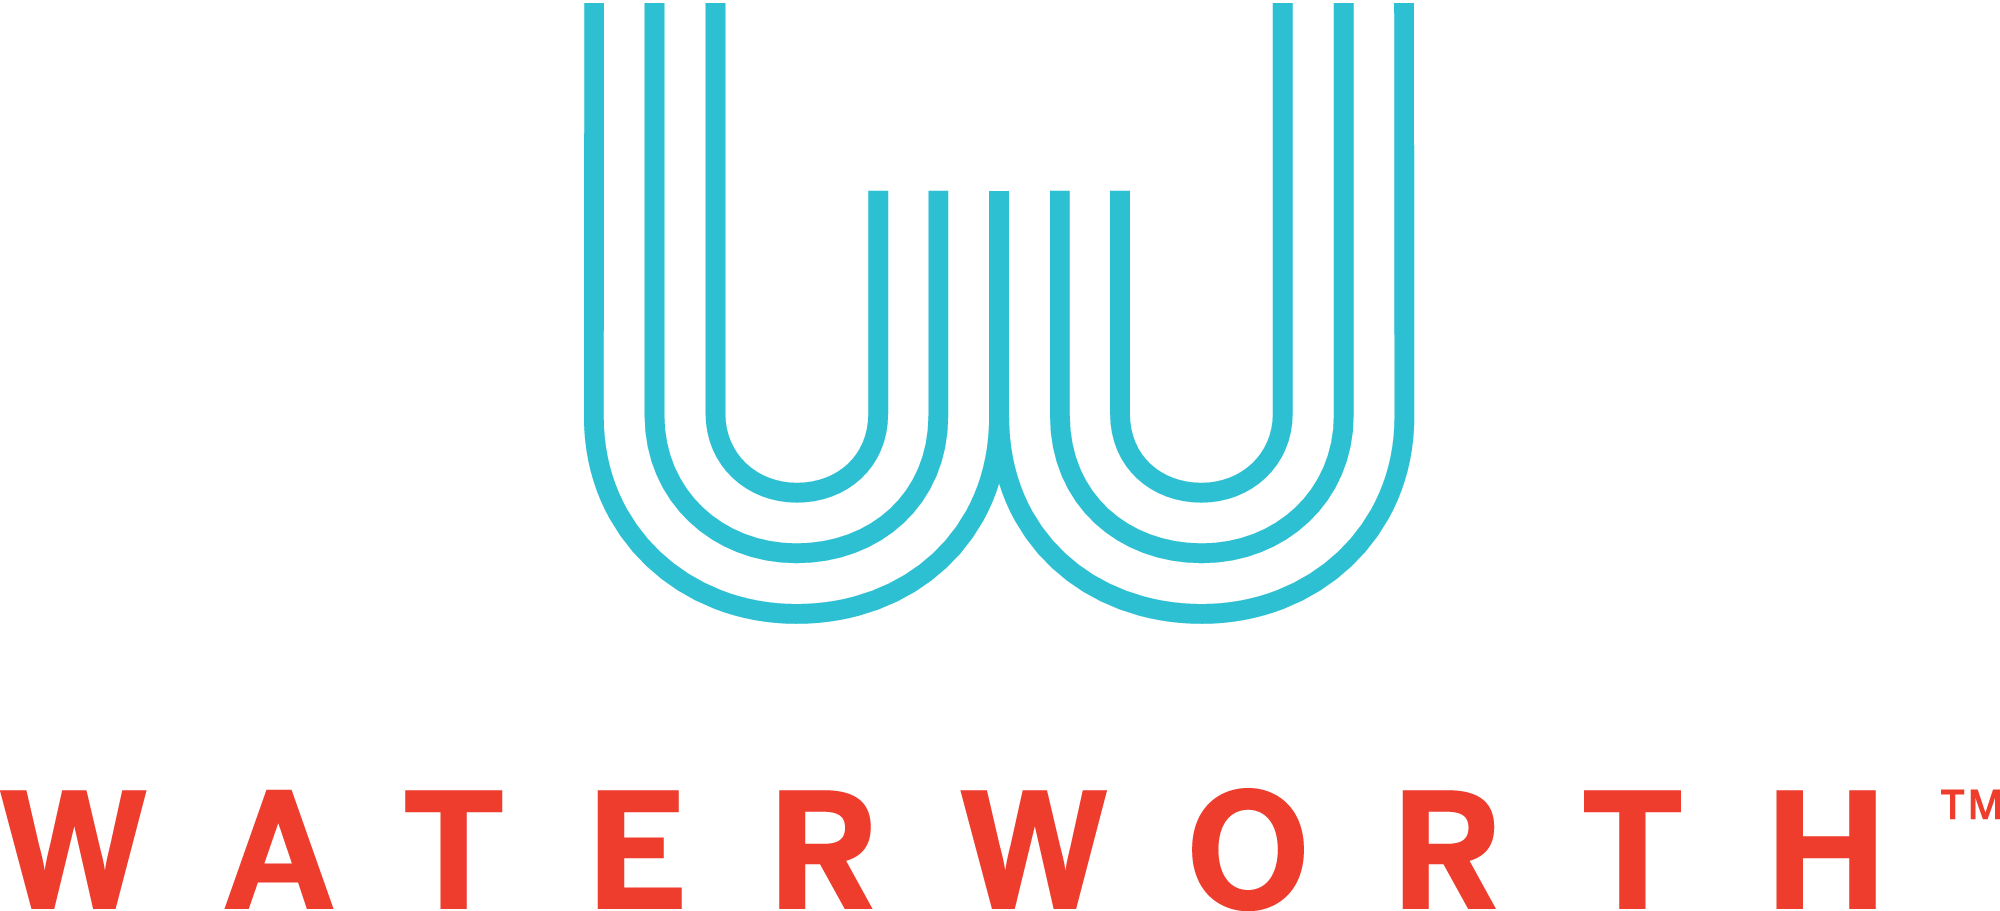 Waterworth-logo